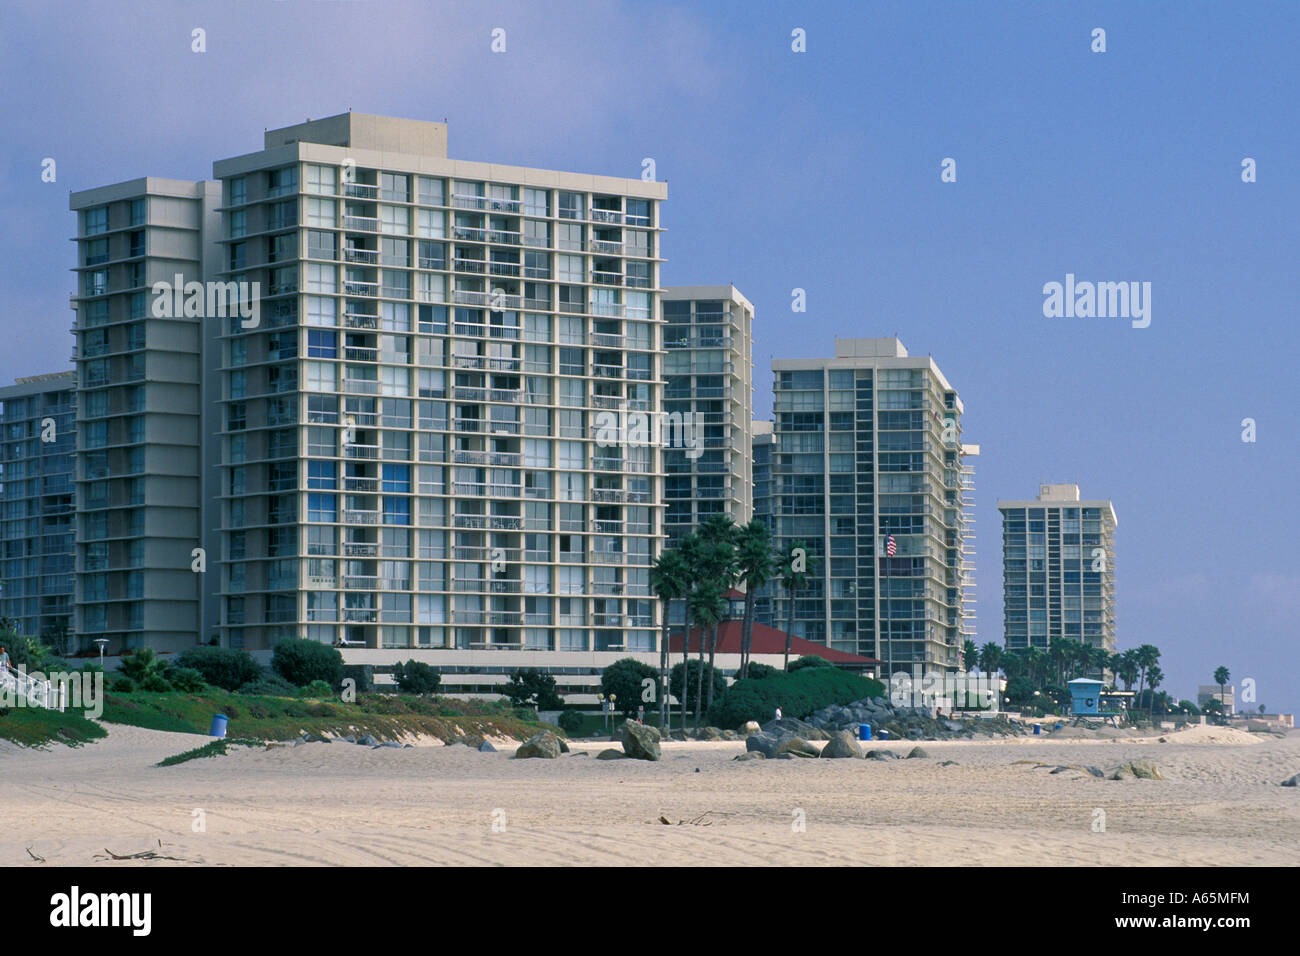 Apartment buildings along coronado beach coronado san diego county stock photo royalty free - Apartment buildings san diego ...